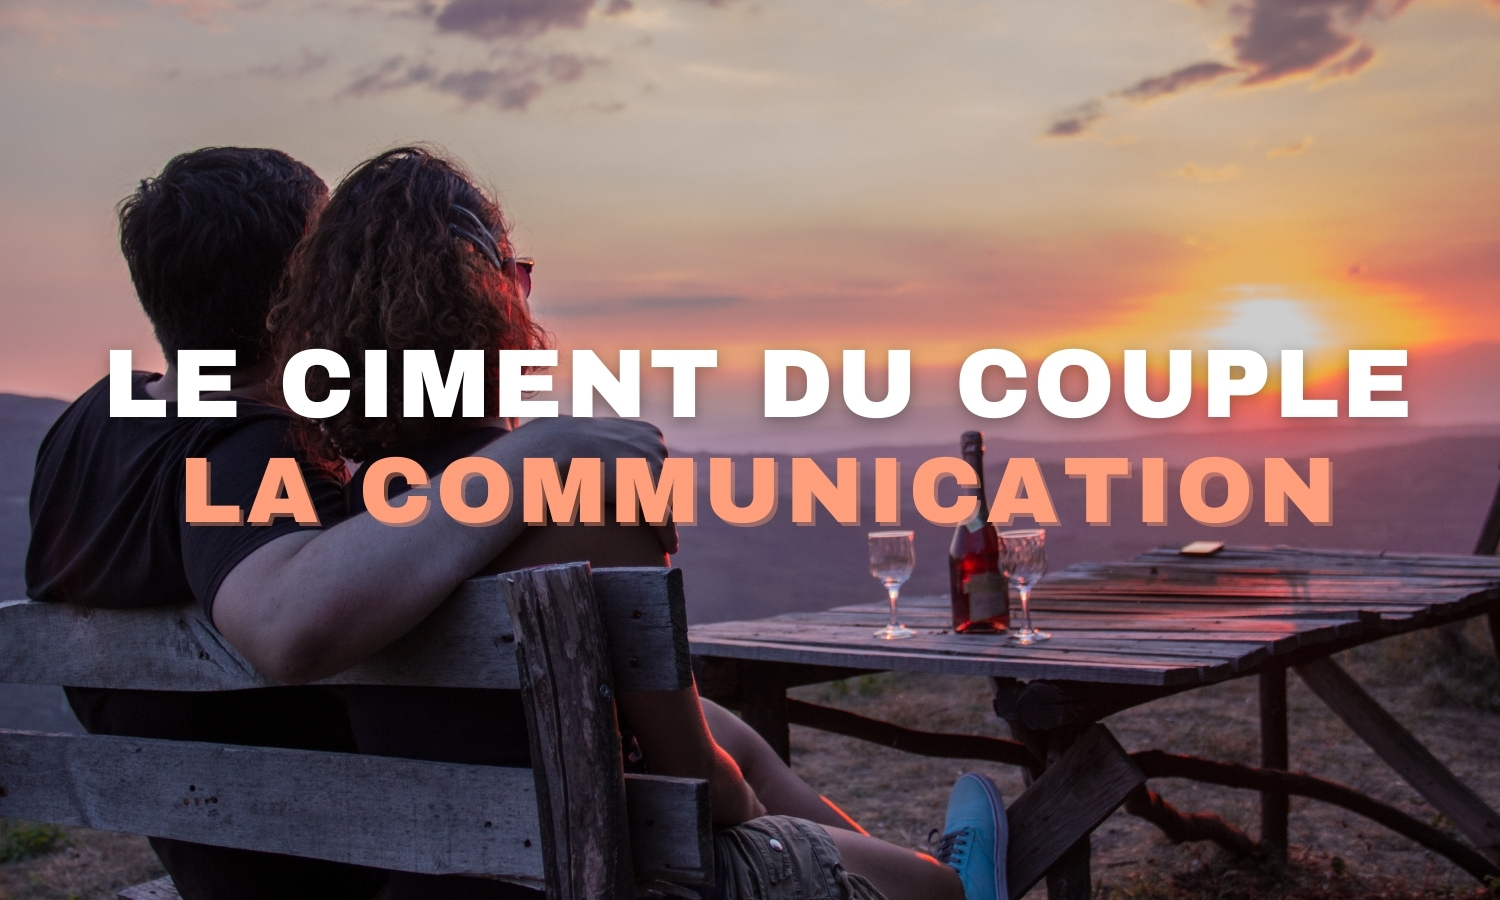 Le ciment du couple : la communication